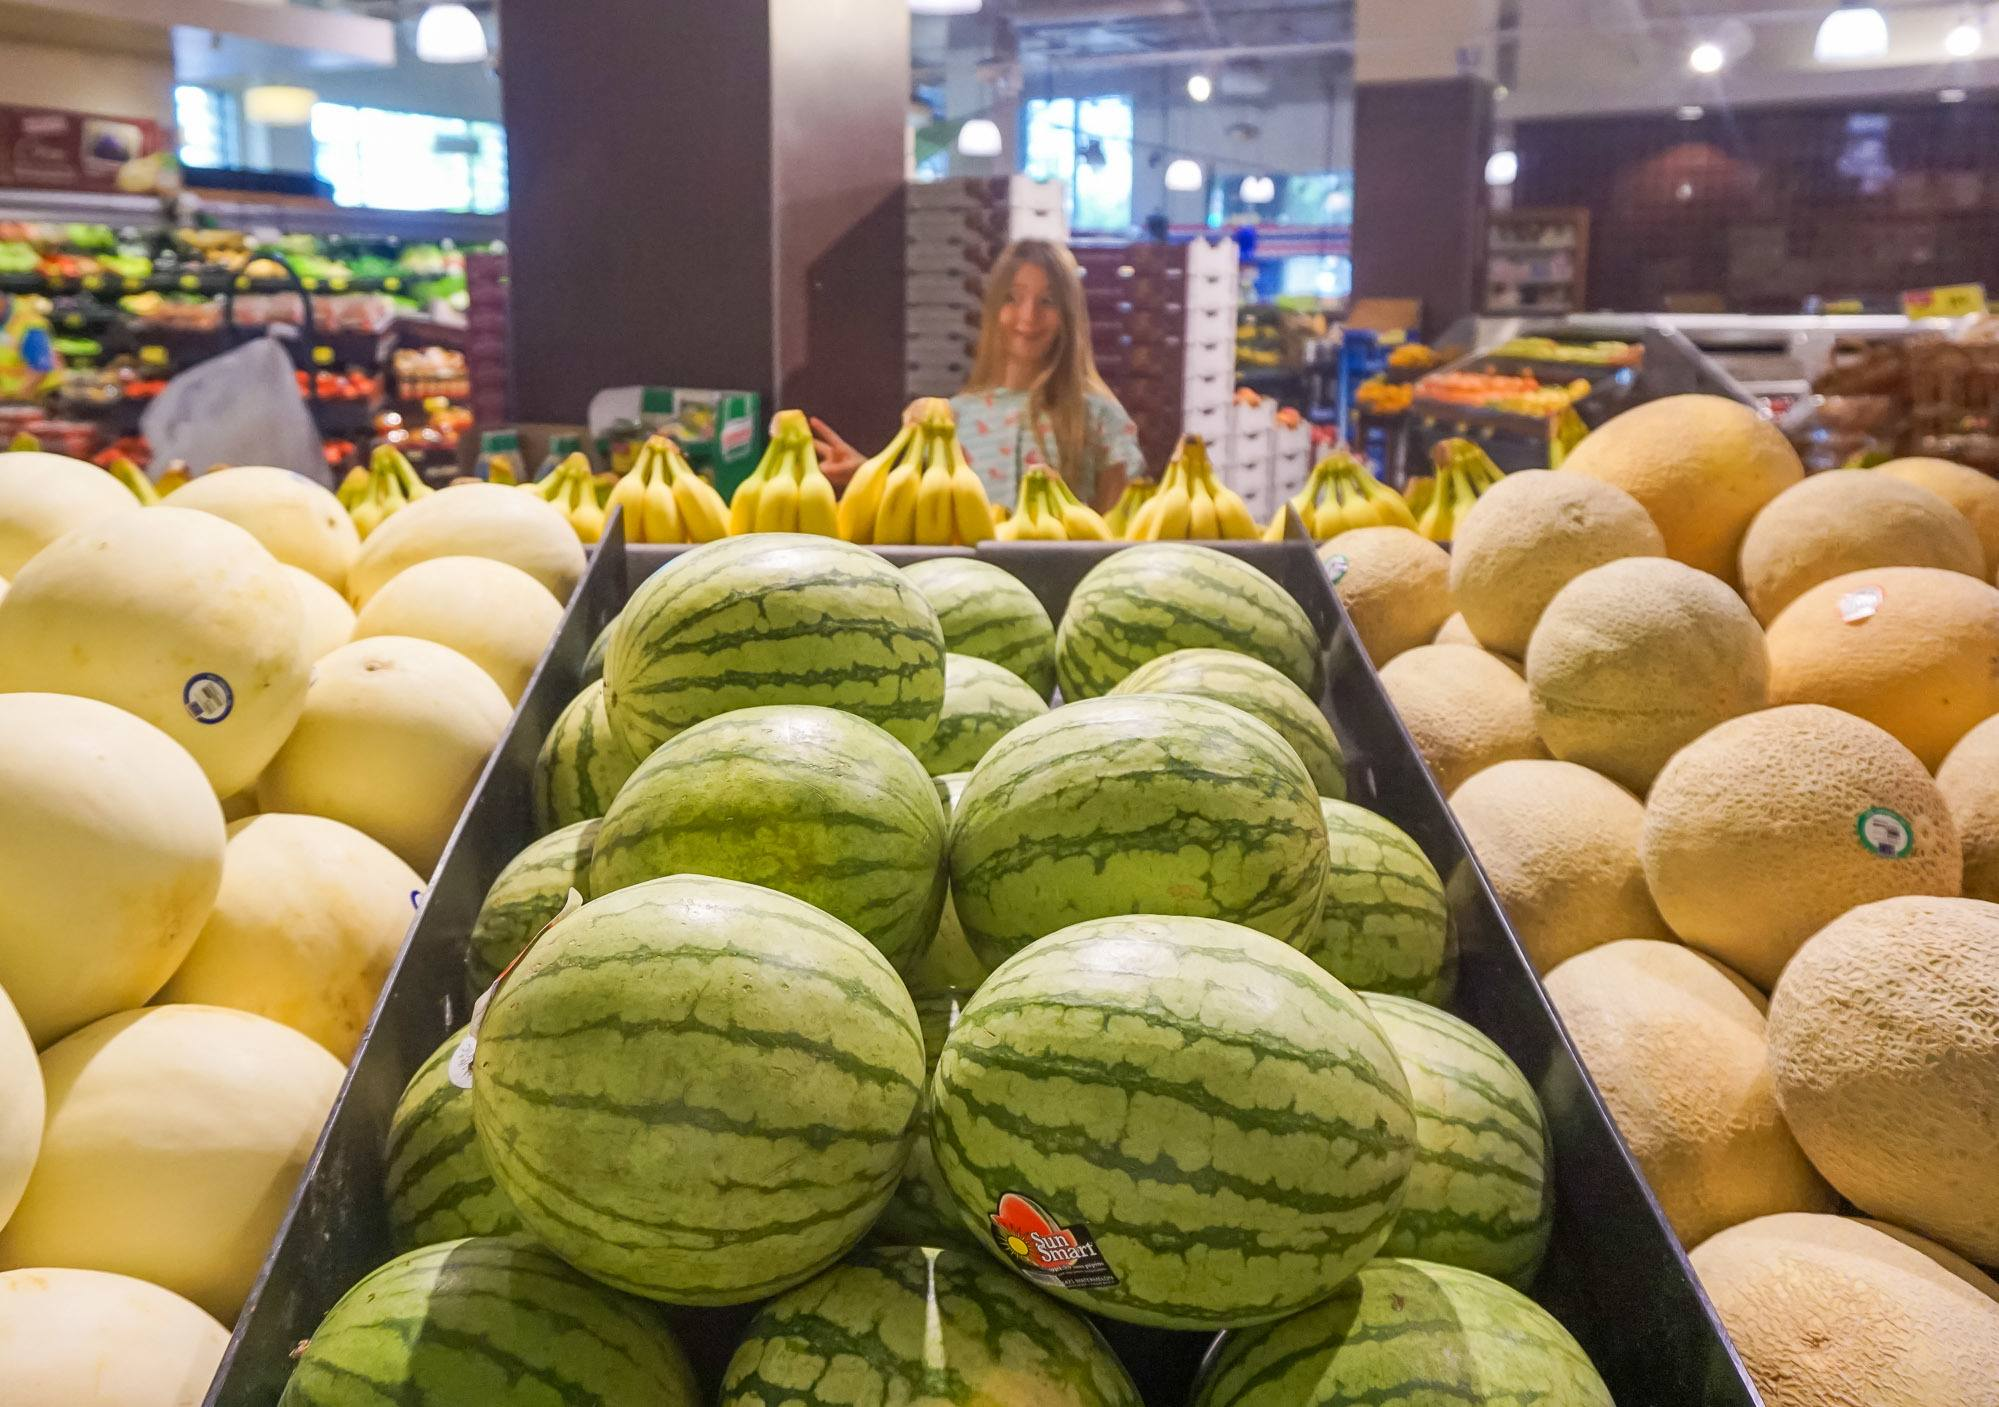 Mini watermelons inside Albertsons San Diego.